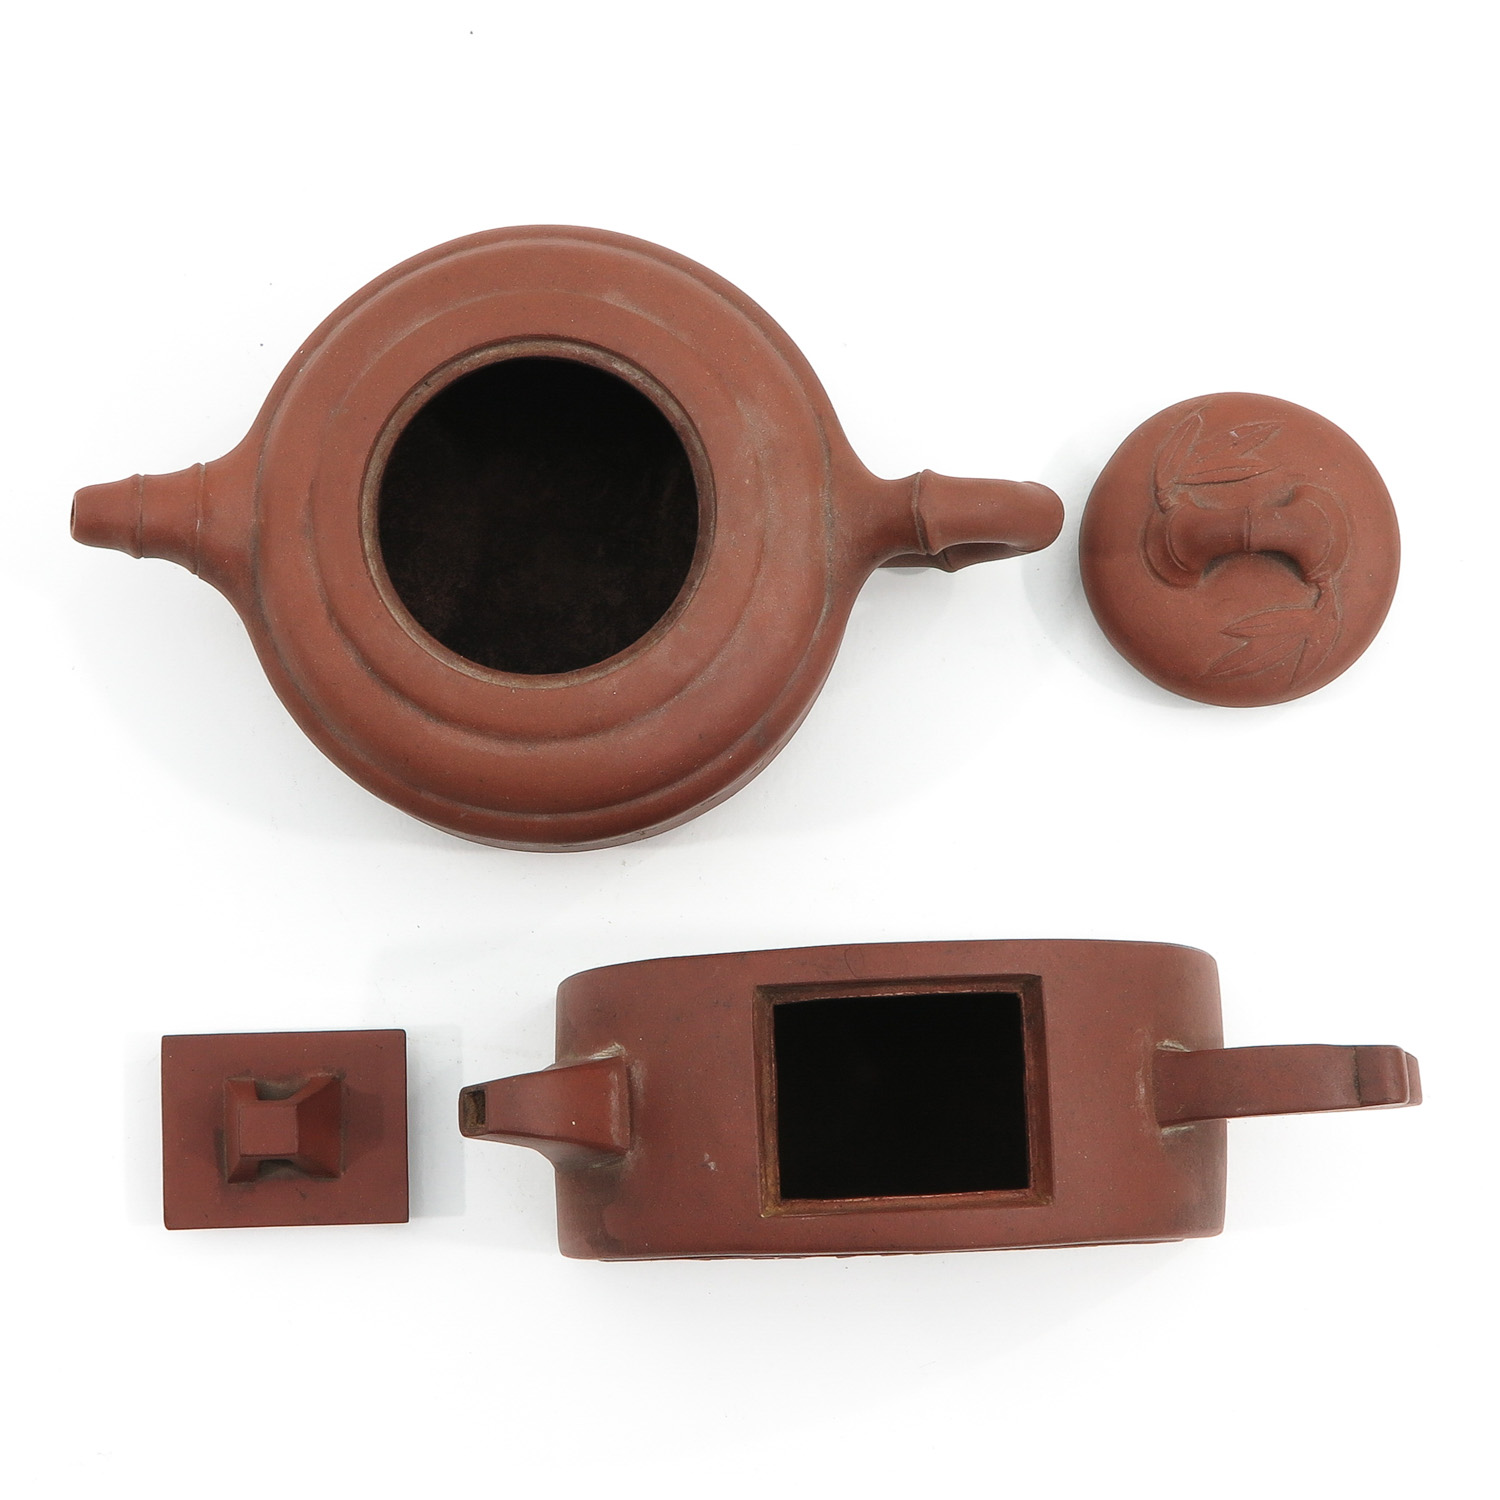 A Lot of 2 Yixing Teapots - Image 5 of 9